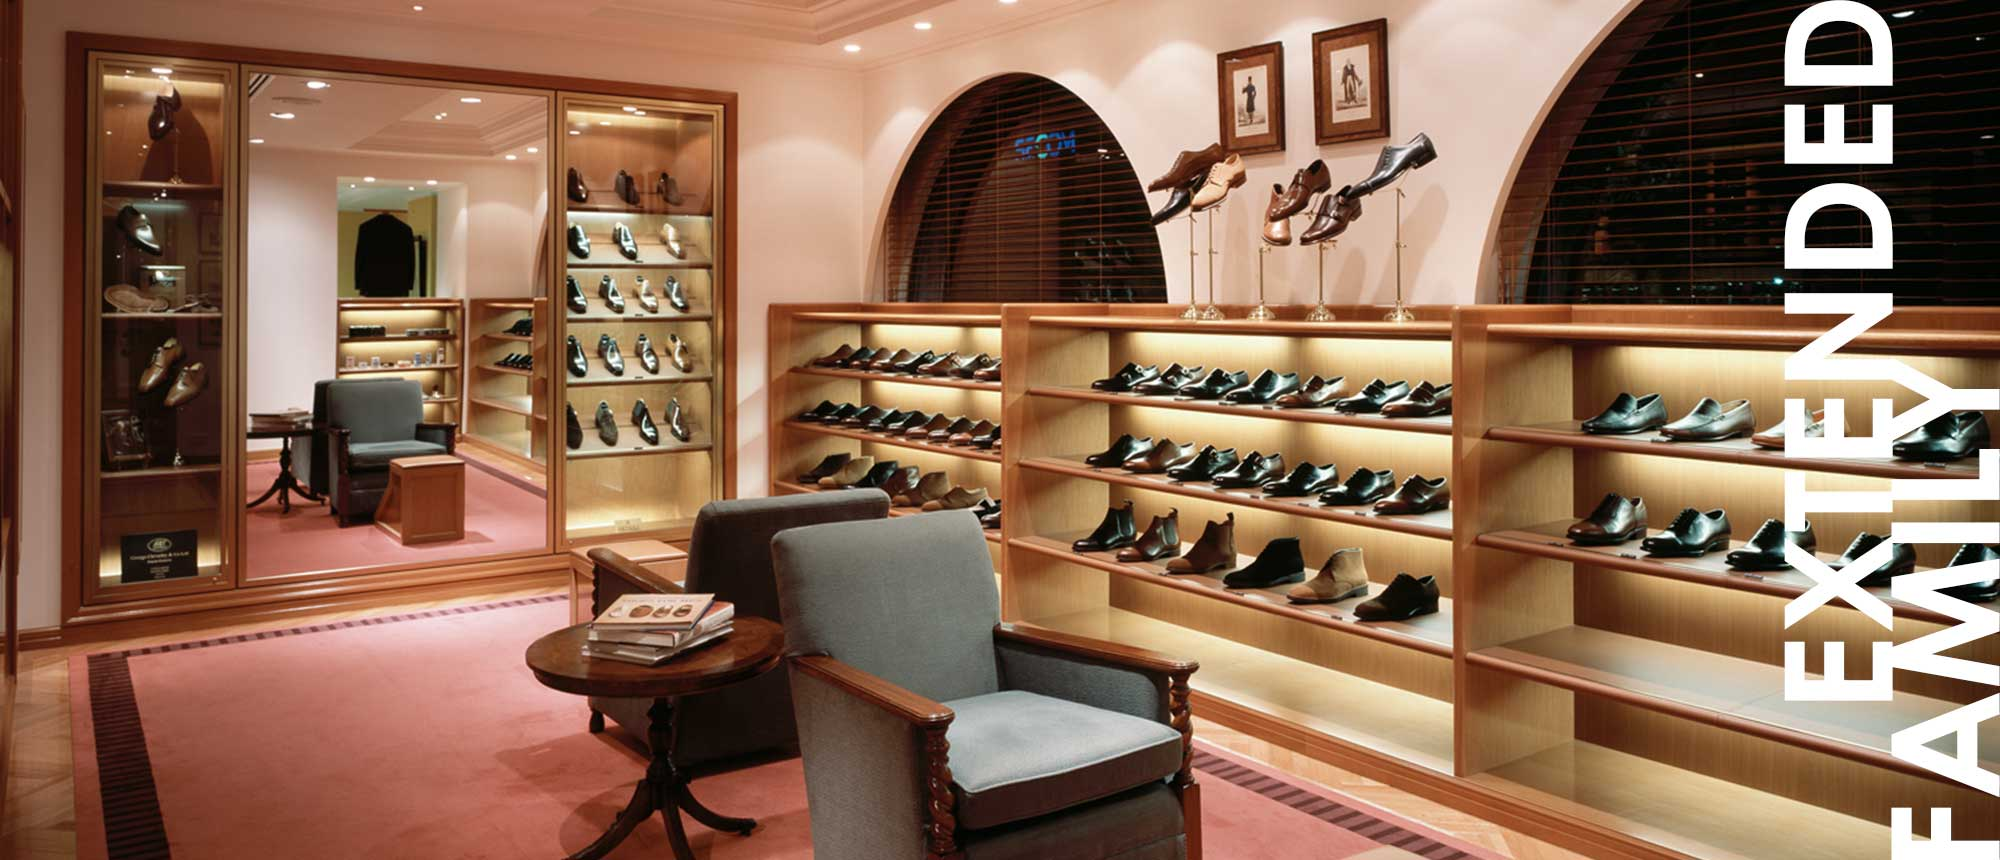 Crockett & Jones - Extended Family. Beams, Tokyo, Japan.